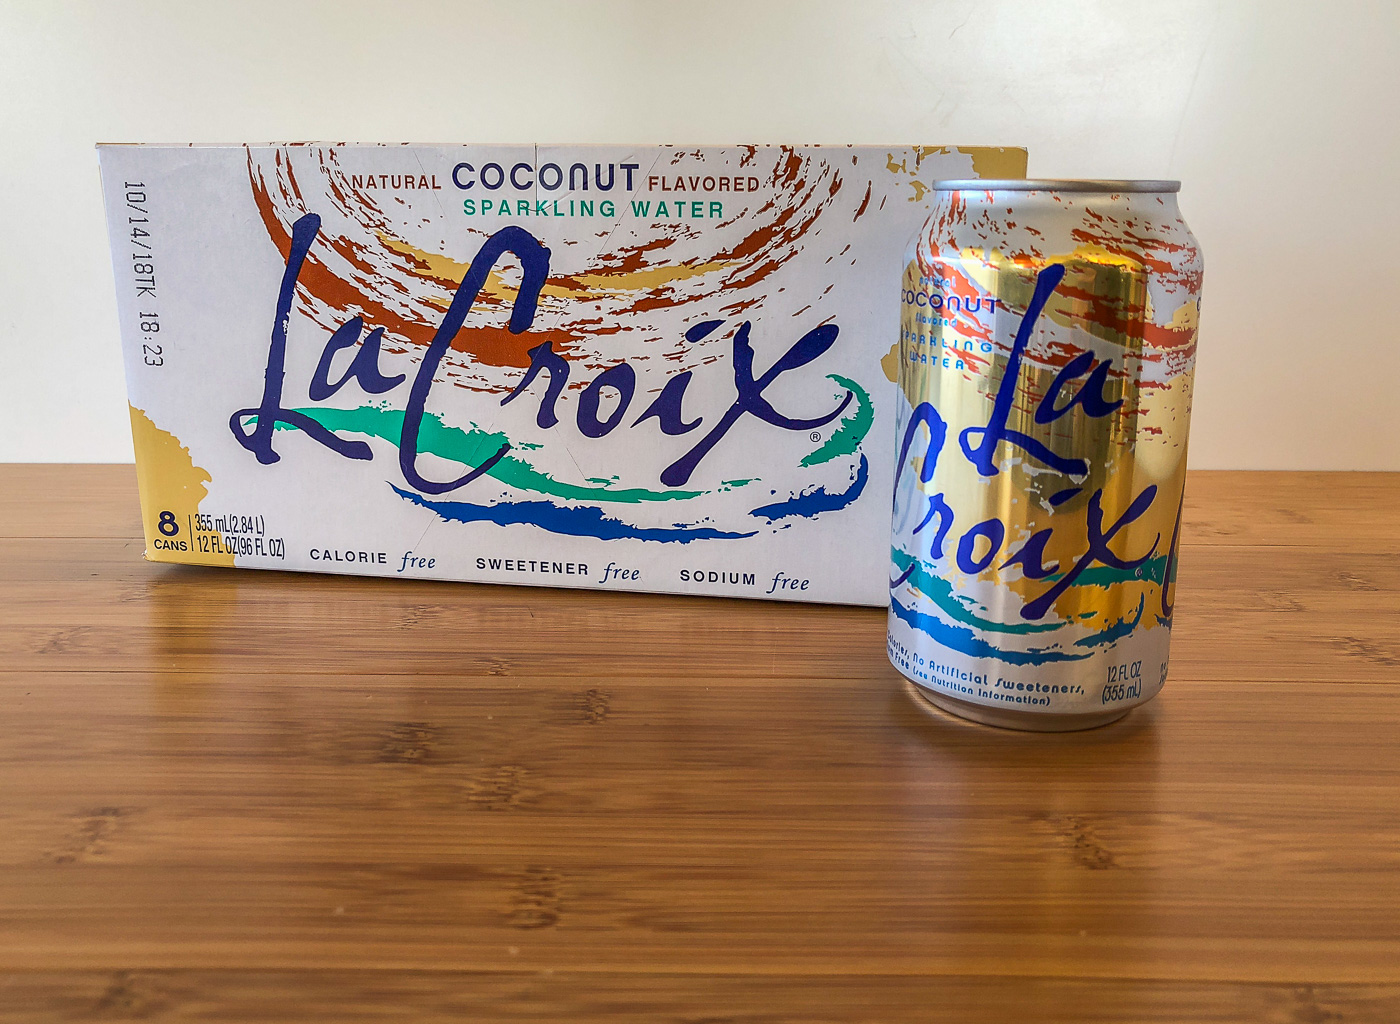 Can of coconut LaCroix next to the box/case